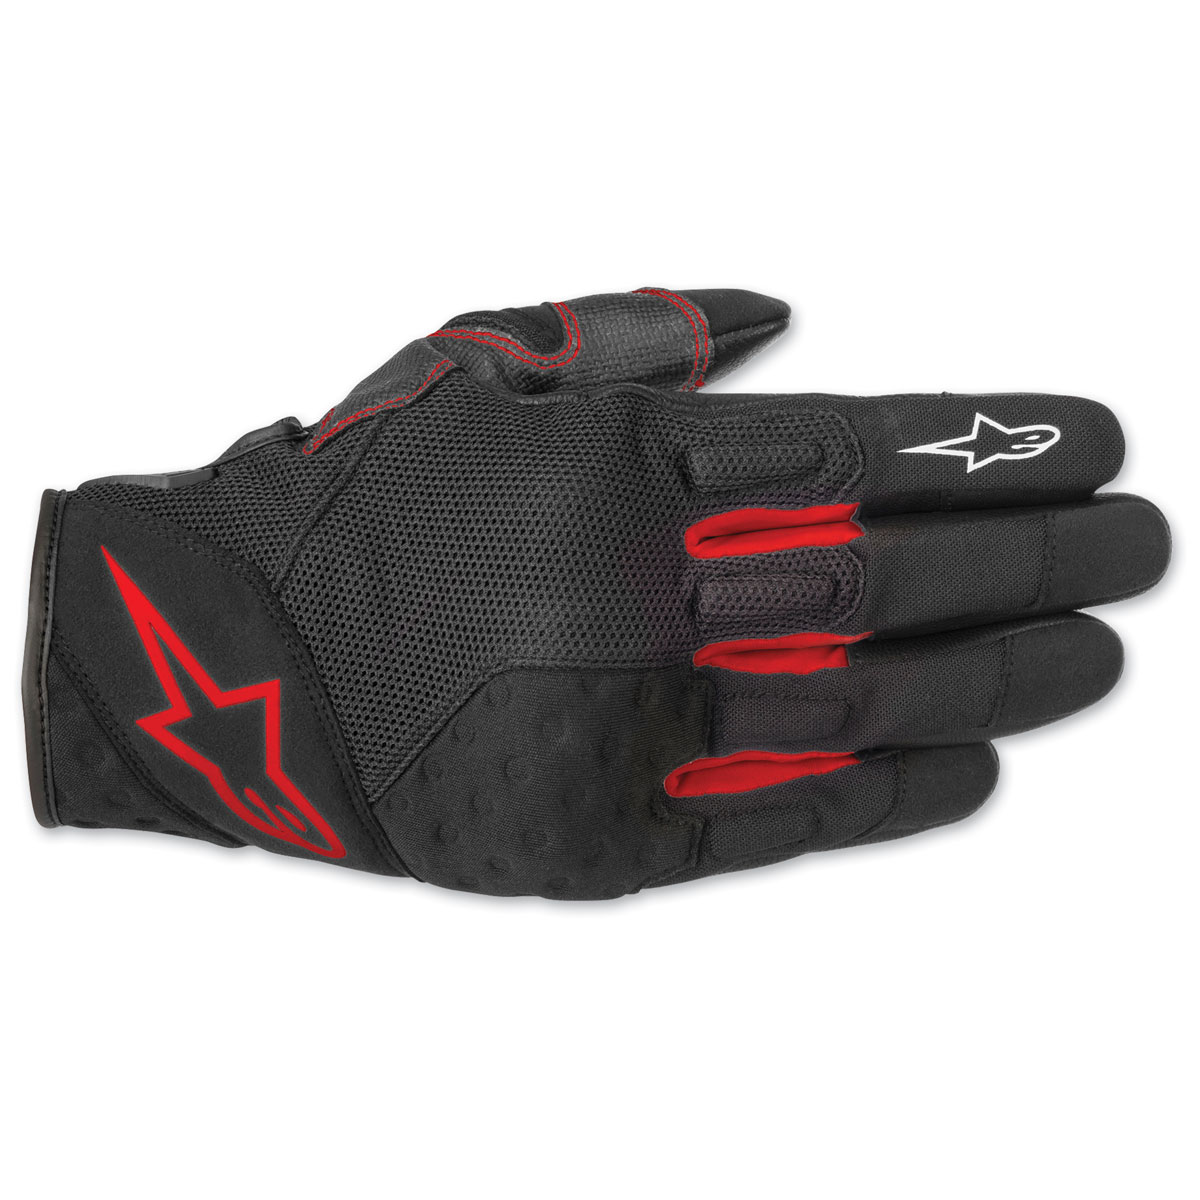 Alpinestars Men's Kinetic Black/Red Gloves